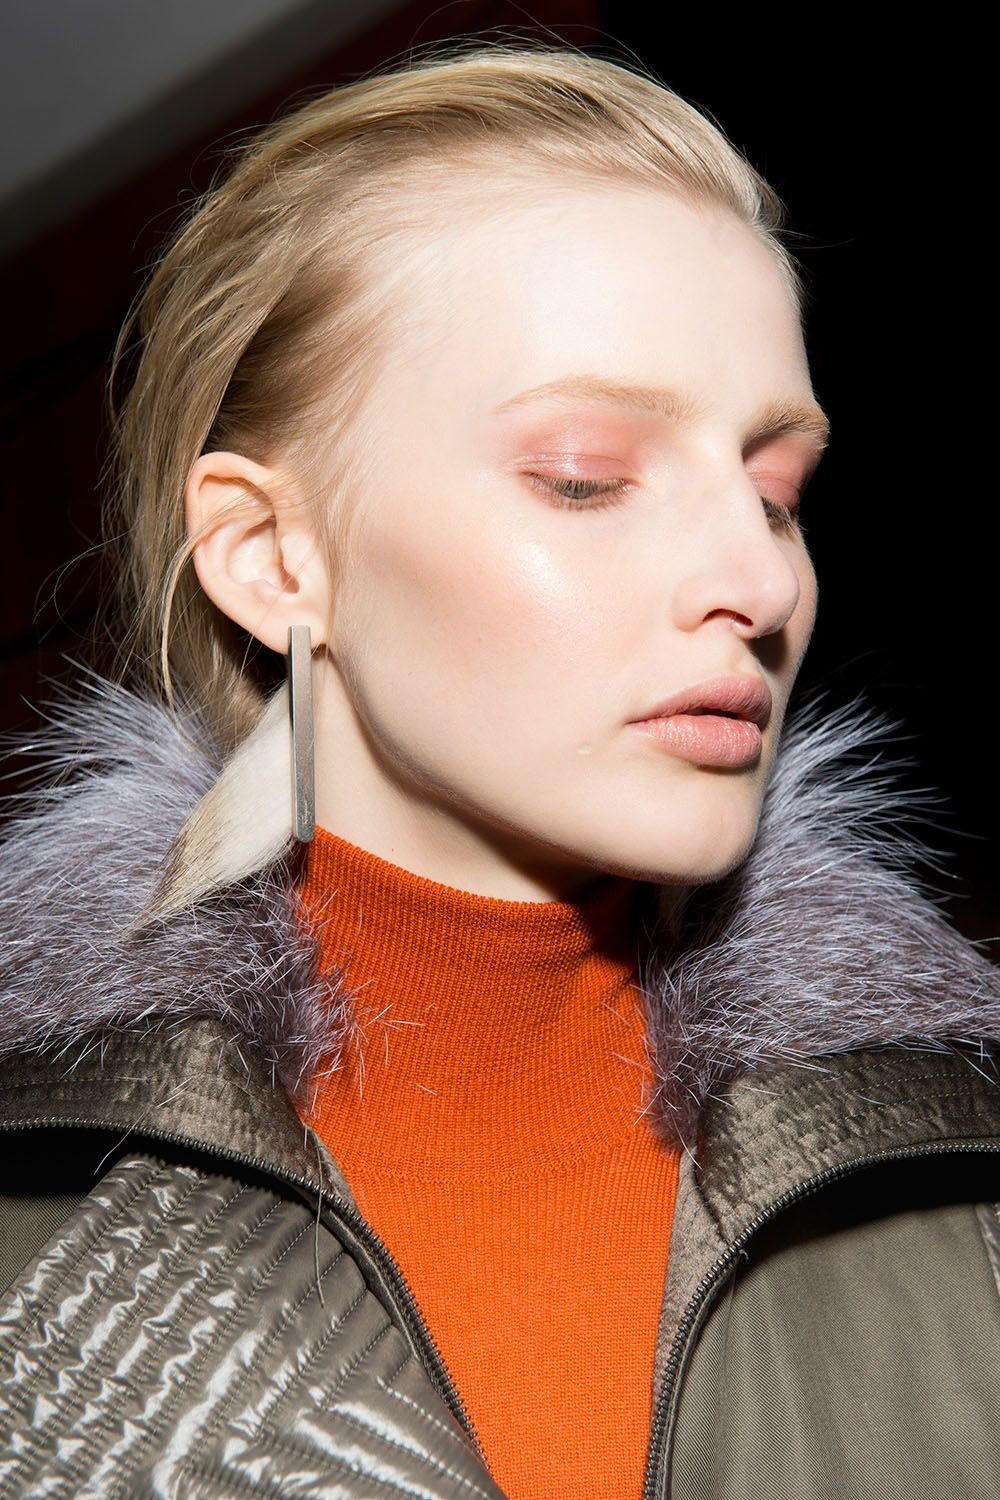 The Best Makeup Trends For Fall 2017 Makeup trends